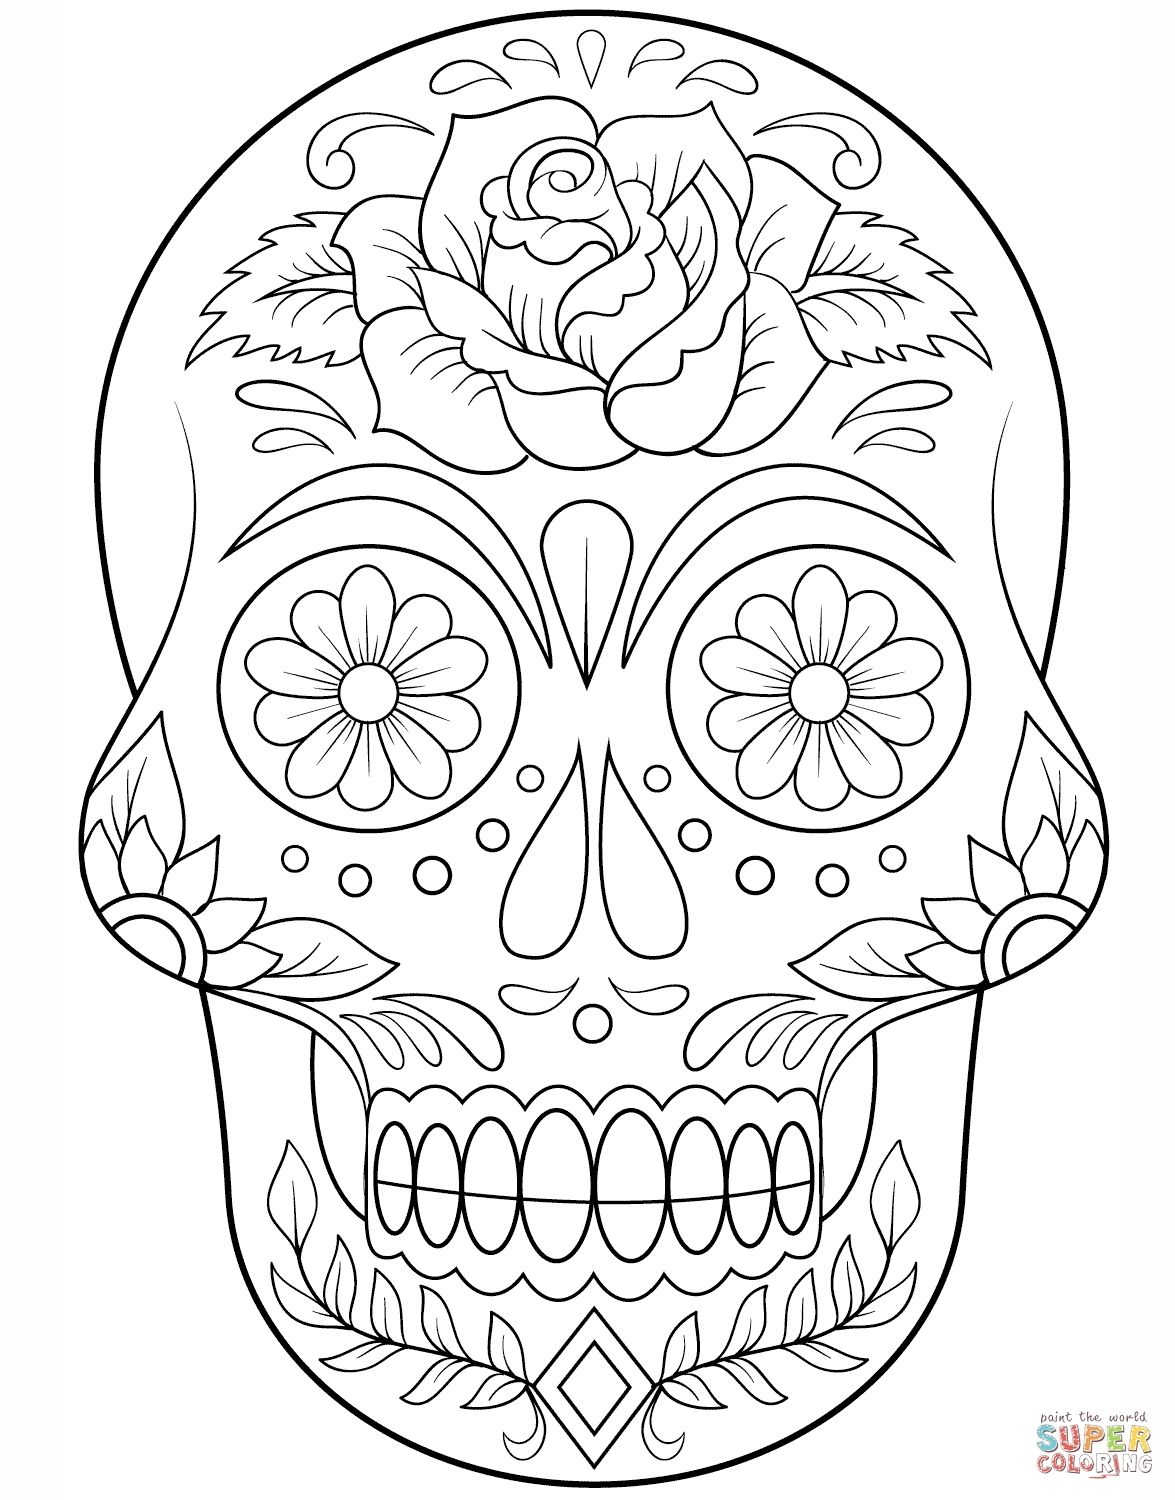 Simple Sugar Skull Coloring Pages 7 T Sugar Skull With Flowers Super Coloring Christmas Skull Coloring Pages Sugar Skull Drawing Flower Coloring Pages